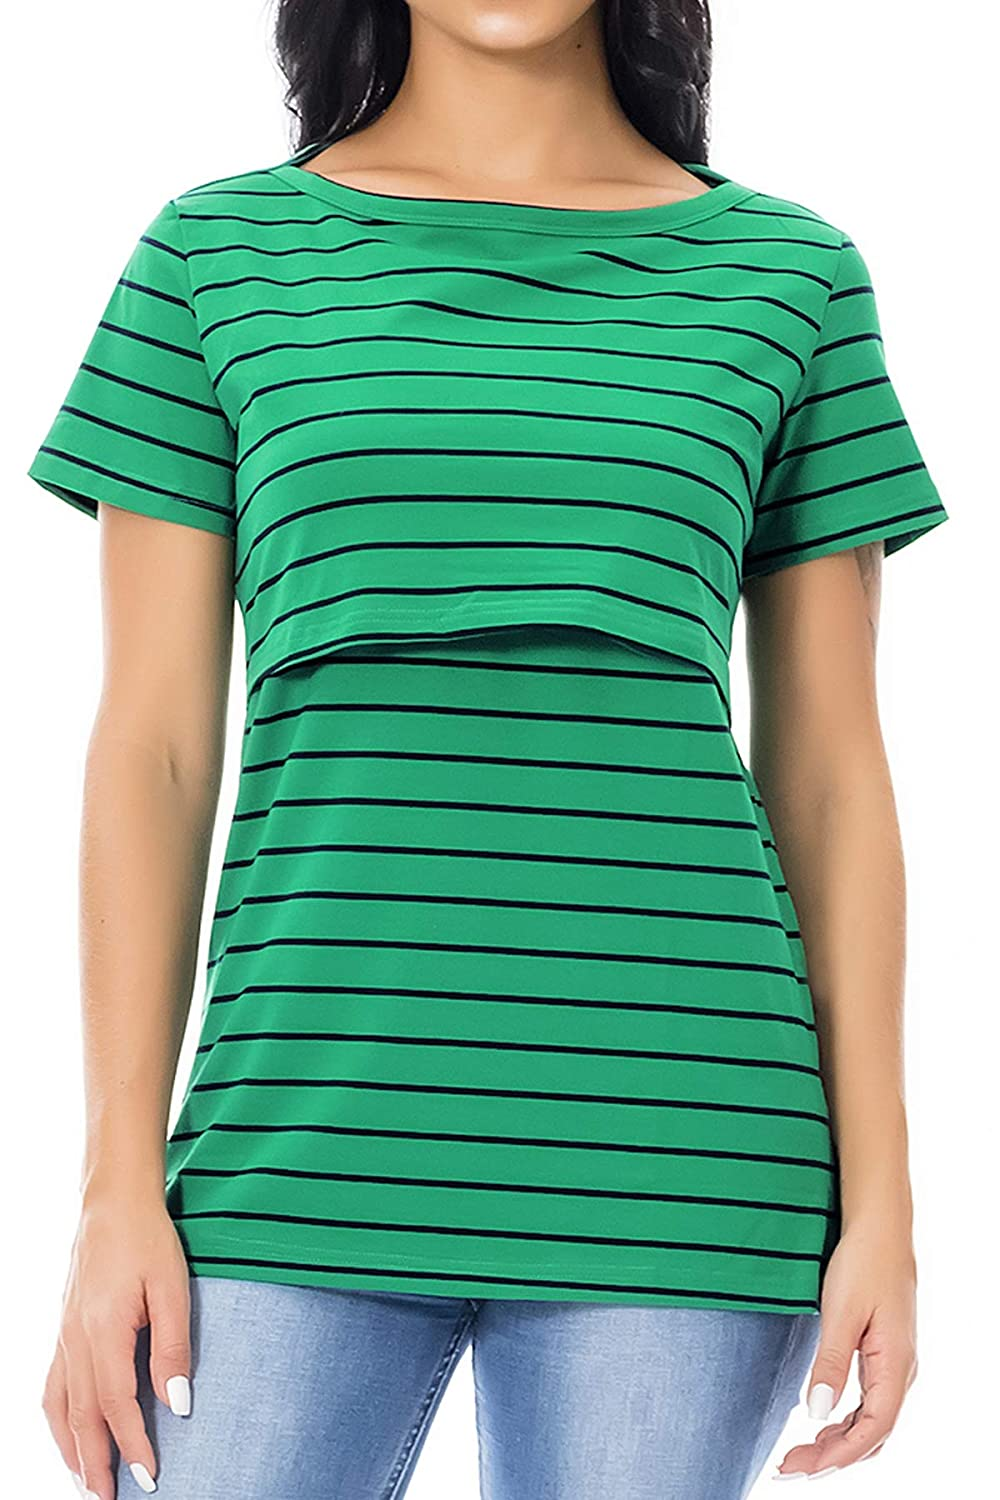 Smallshow Women's Maternity Nursing Top Stripe Breastfeeding T-Shirt